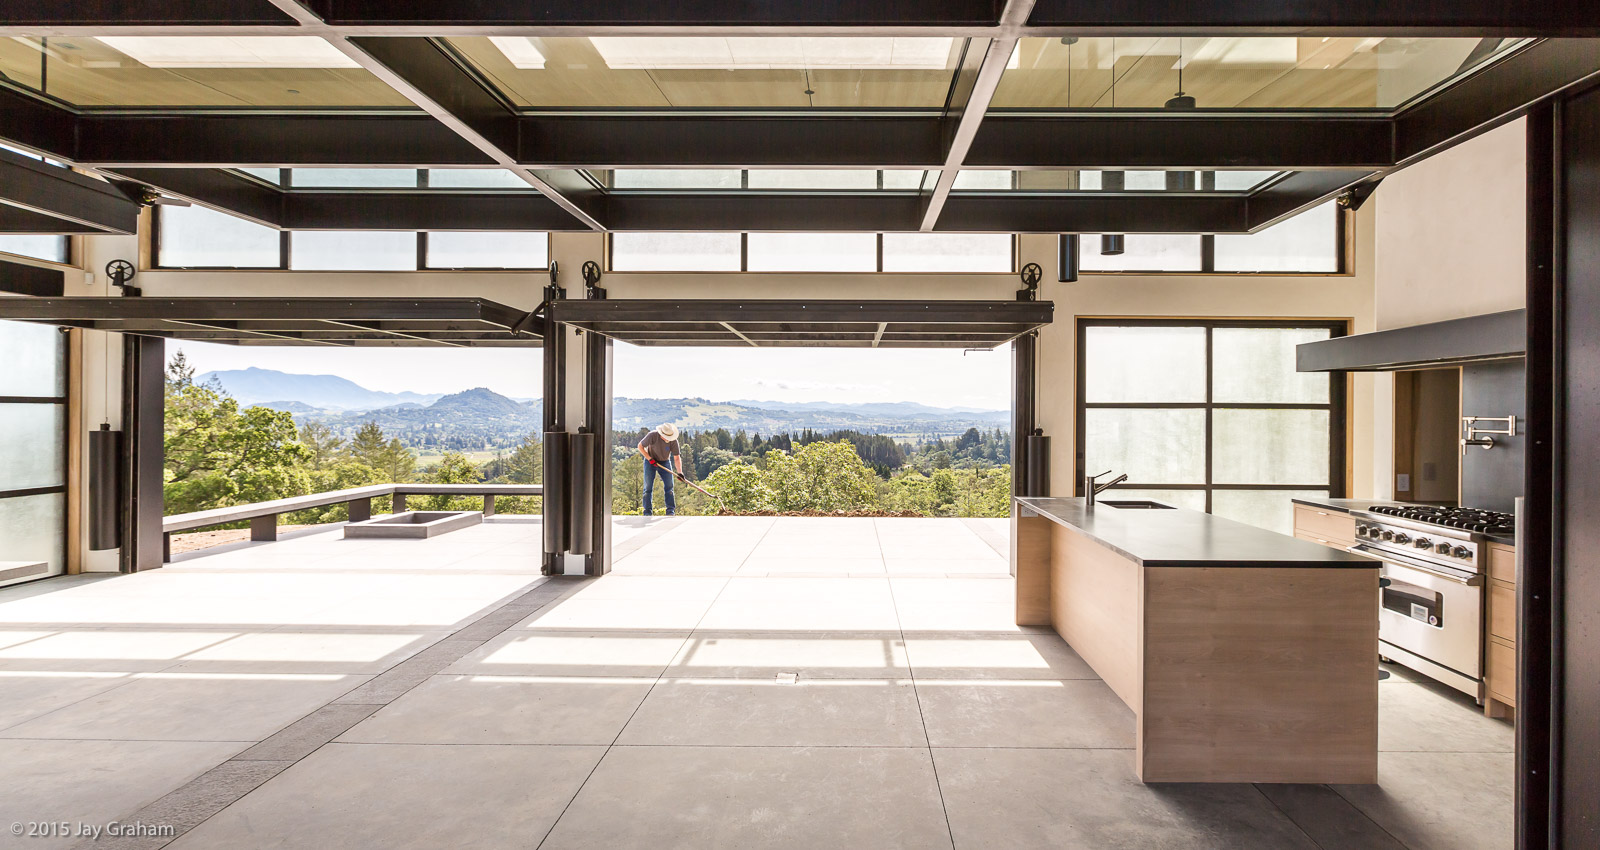 This is a dramatic residence with Renlita floating doors that allow a seamless transition between indoor and outdoor spaces. Designed by Feldman Architecture, built by Caletti Jungsten, with lanscaping by Arterra Landscape Architects.